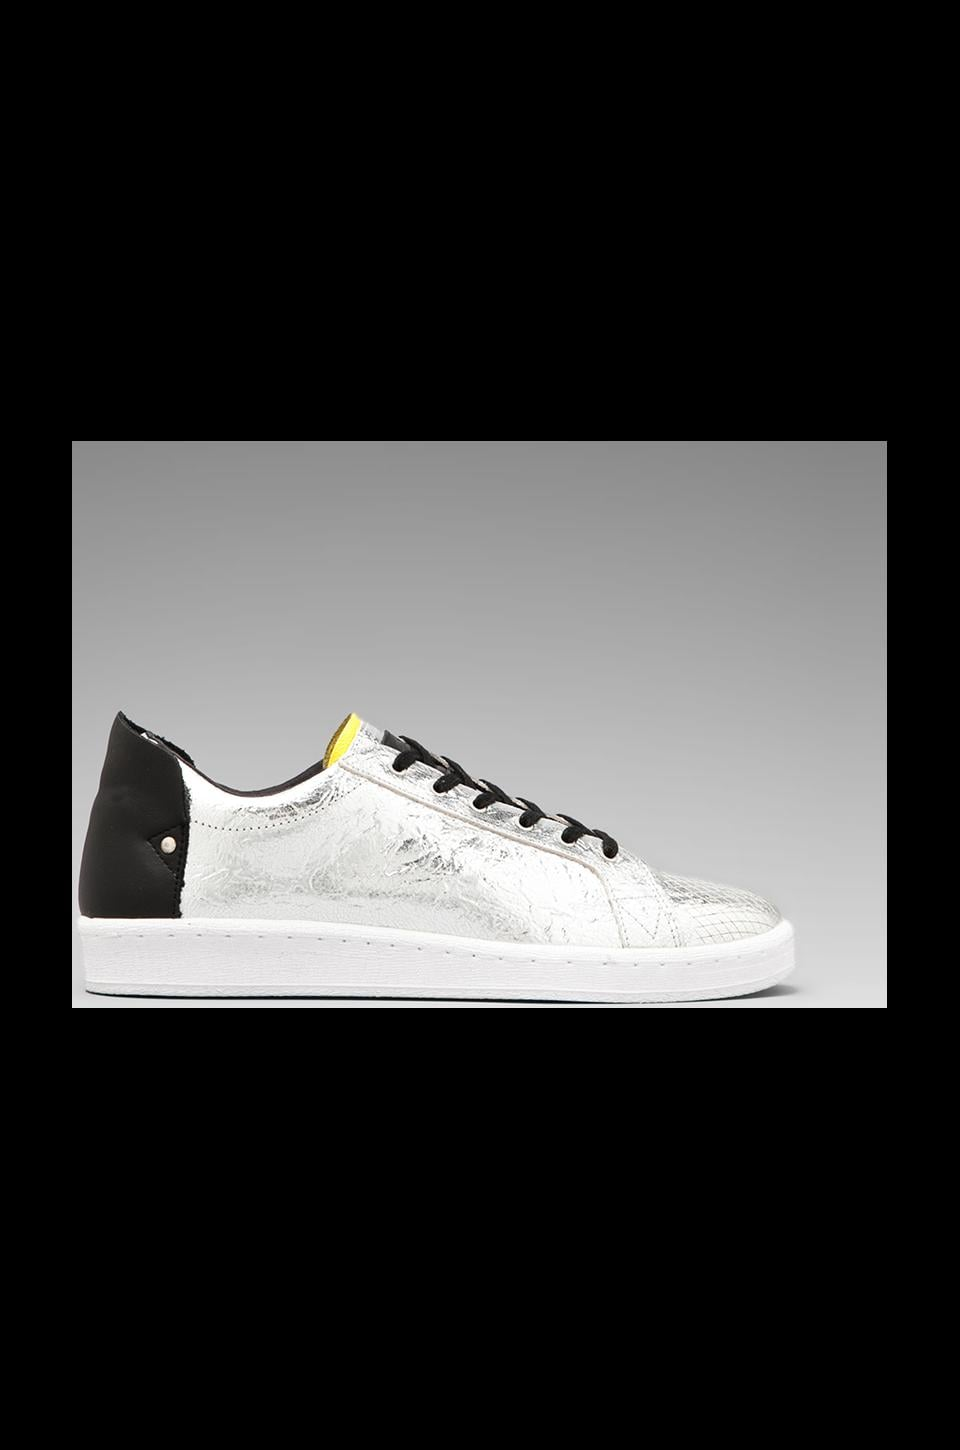 adidas SLVR Cupsole Lo Lace in Metallic Silver/White/Vivid Yellow